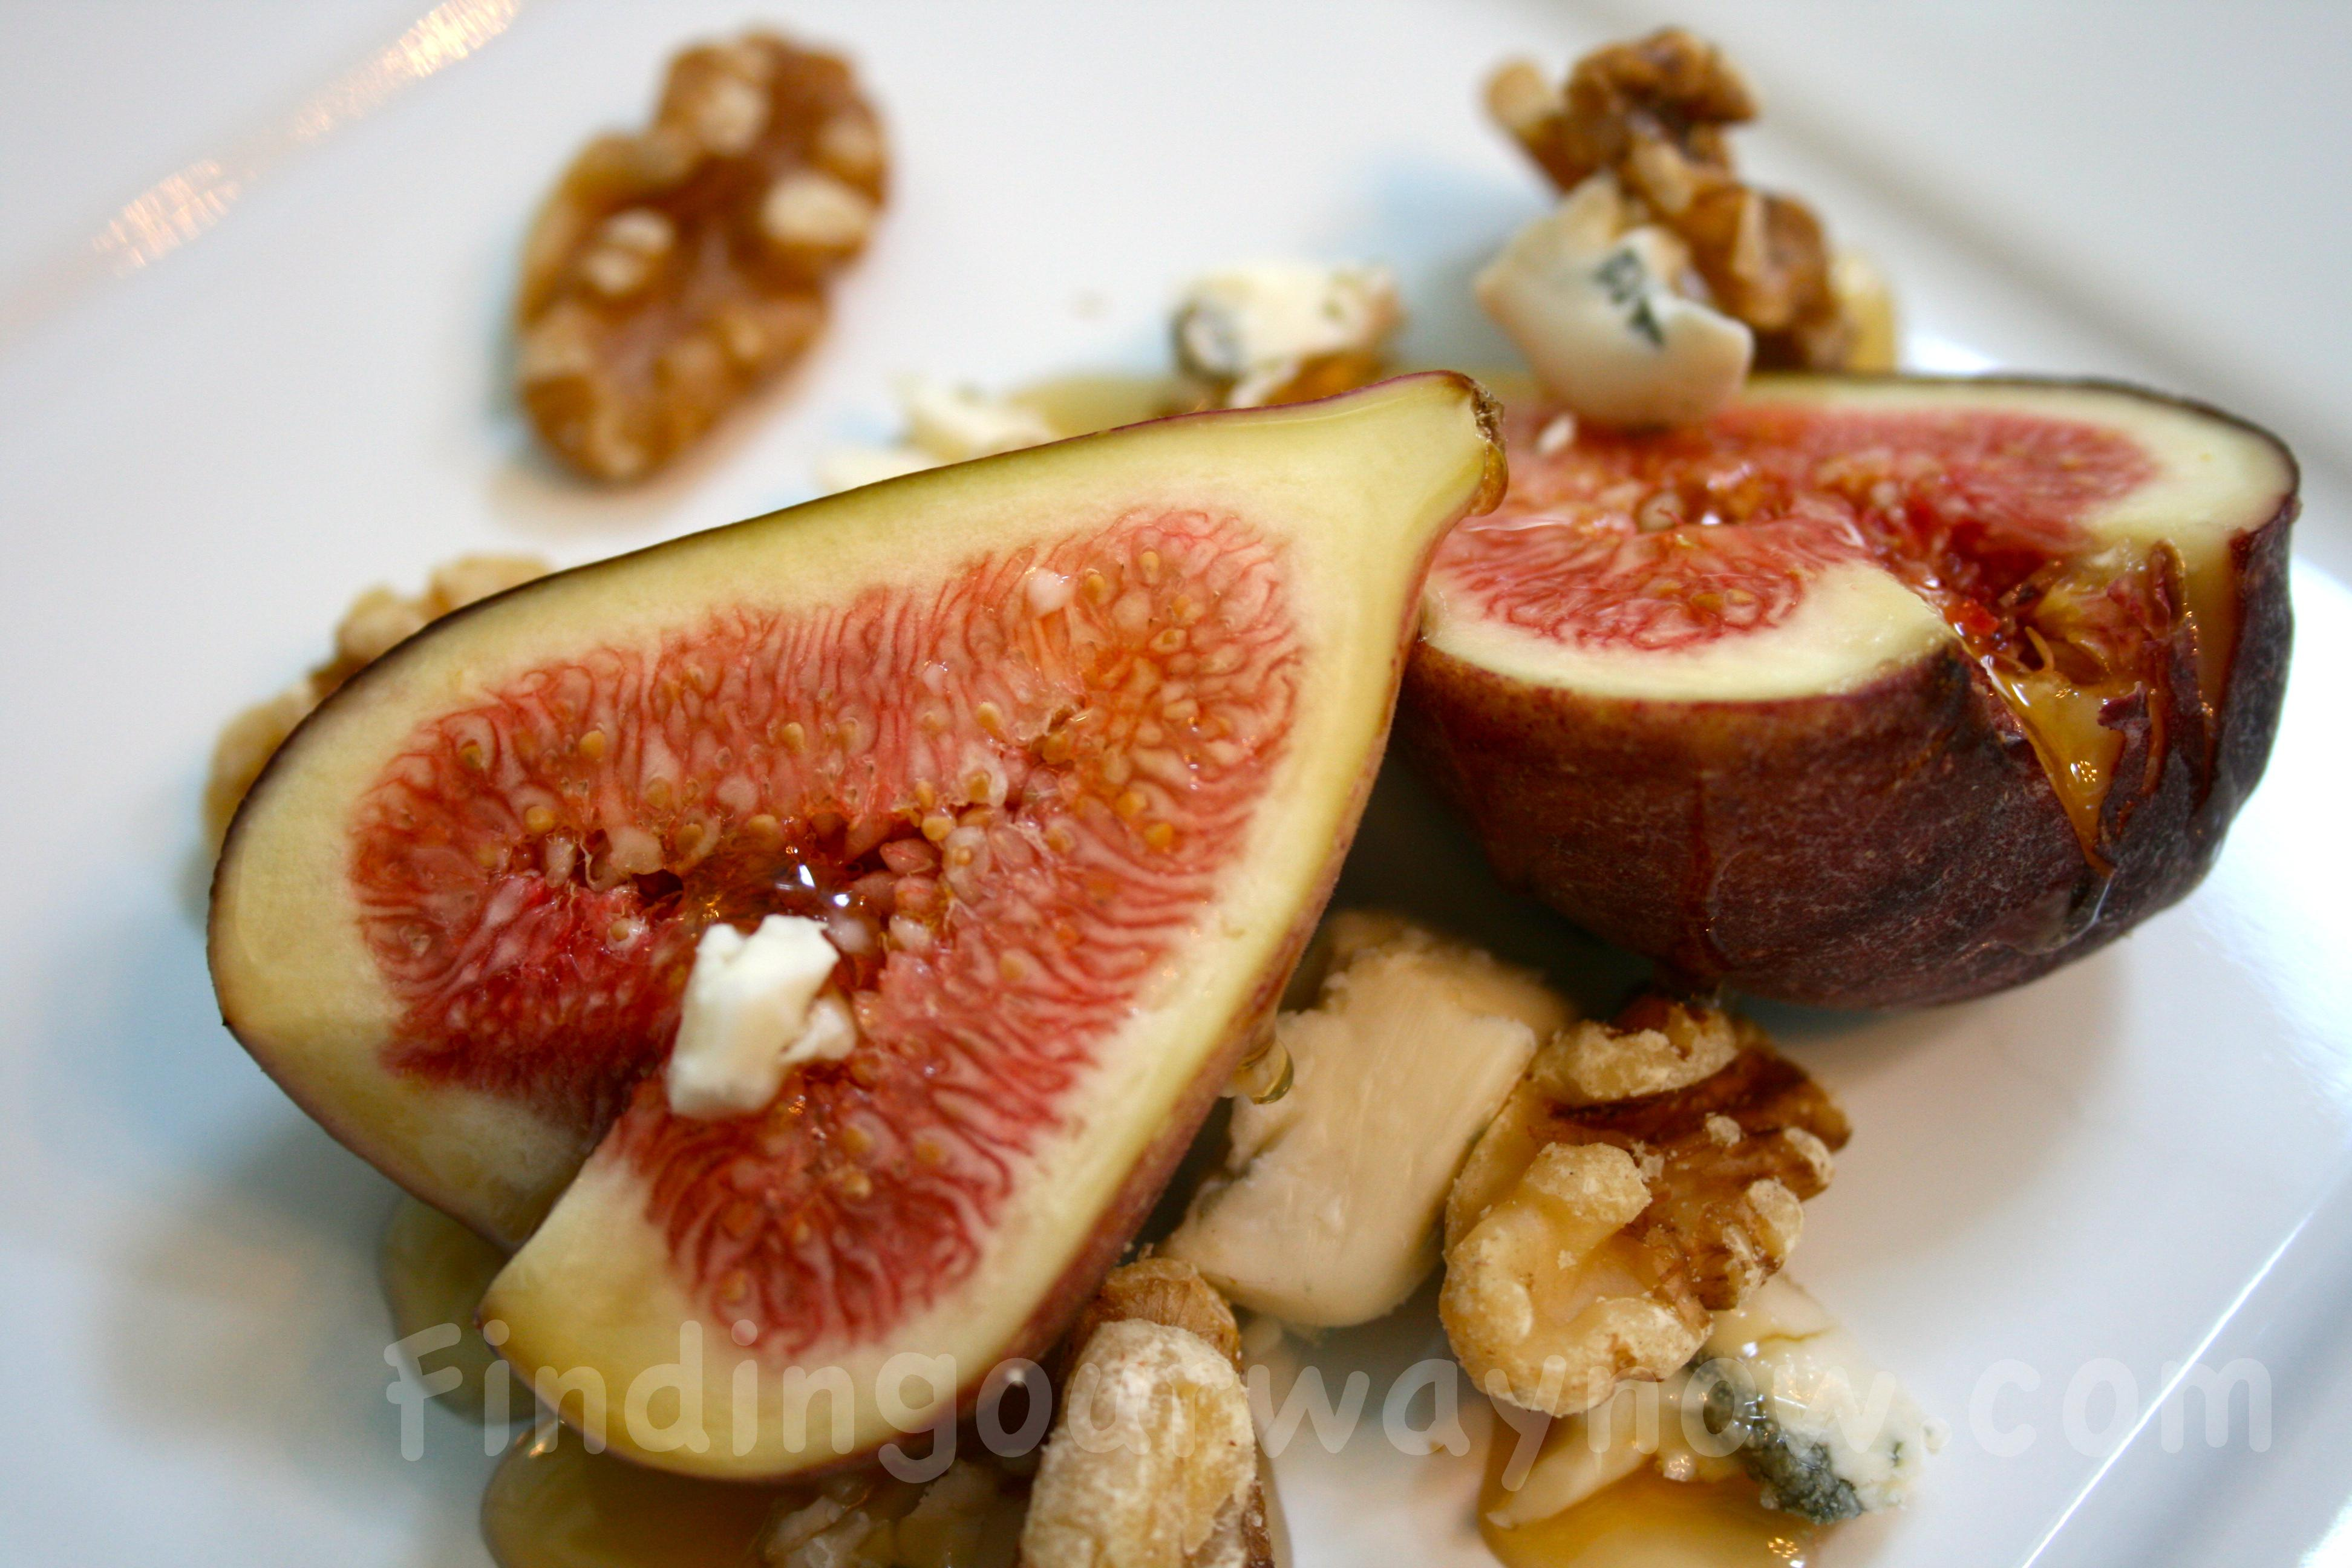 Fresh Figs and Honey Dessert, findingourwaynow.com